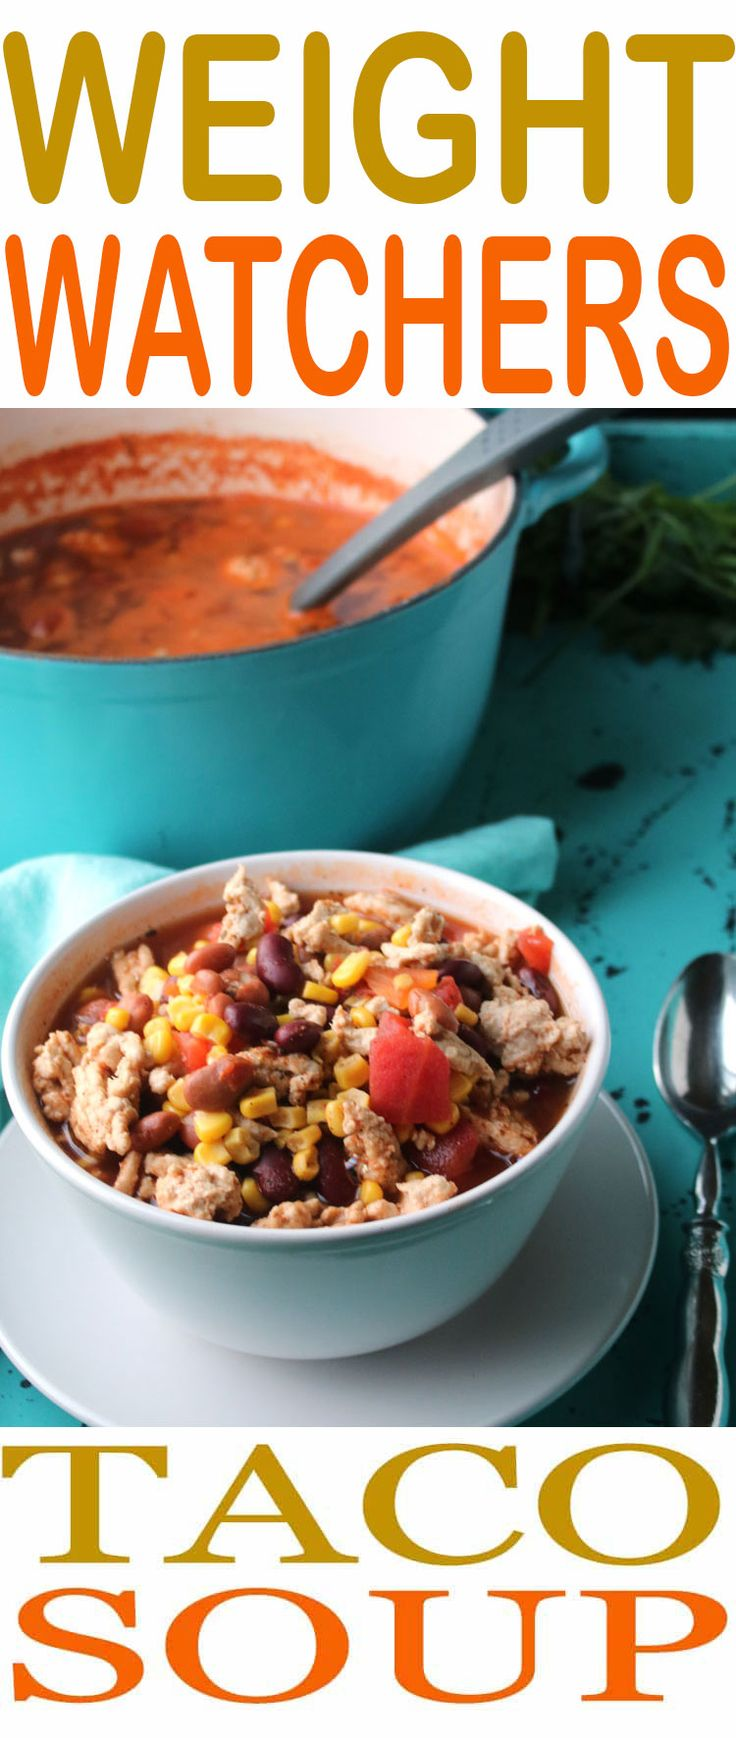 This easy Weight Watchers Taco Soup is so easy to make. Just 3 Smart Points per serving for this delicious soup recipe. Recipe makes 10 servings, so there is plenty to share. Taco Soup is one of the easiest Weight Watchers recipes to make and it is so full of flavor you won't even think about being on a diet. Enjoy a healthier way of eating and our easy Taco Soup recipe. #SmartPoints #WeightWatchers #DietFood